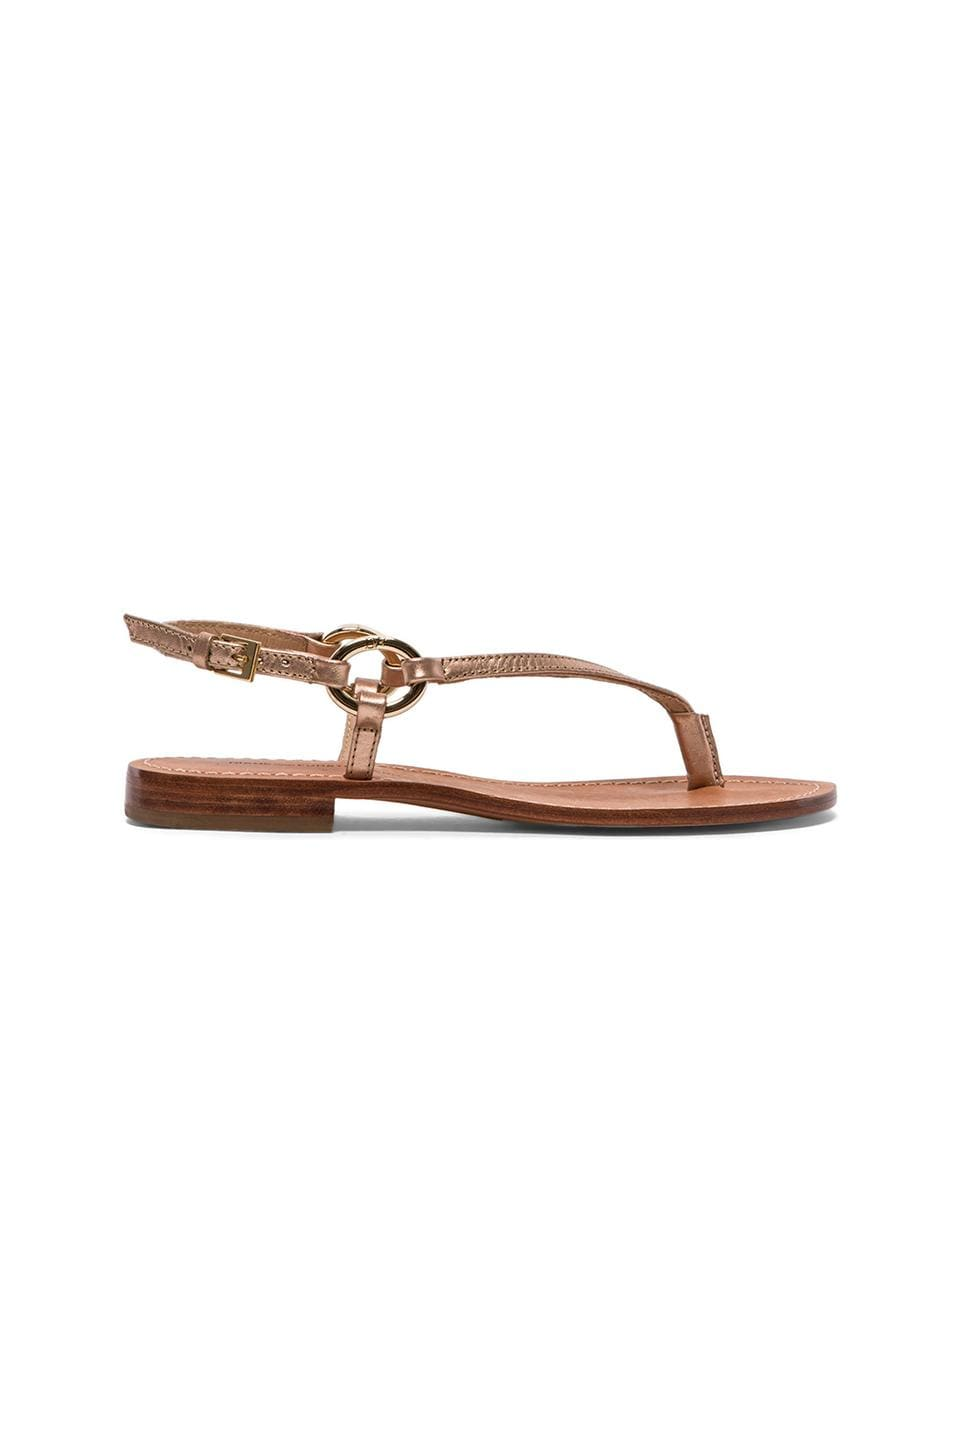 Diane von Furstenberg Cailin Sandal in Rose Gold & Metallic